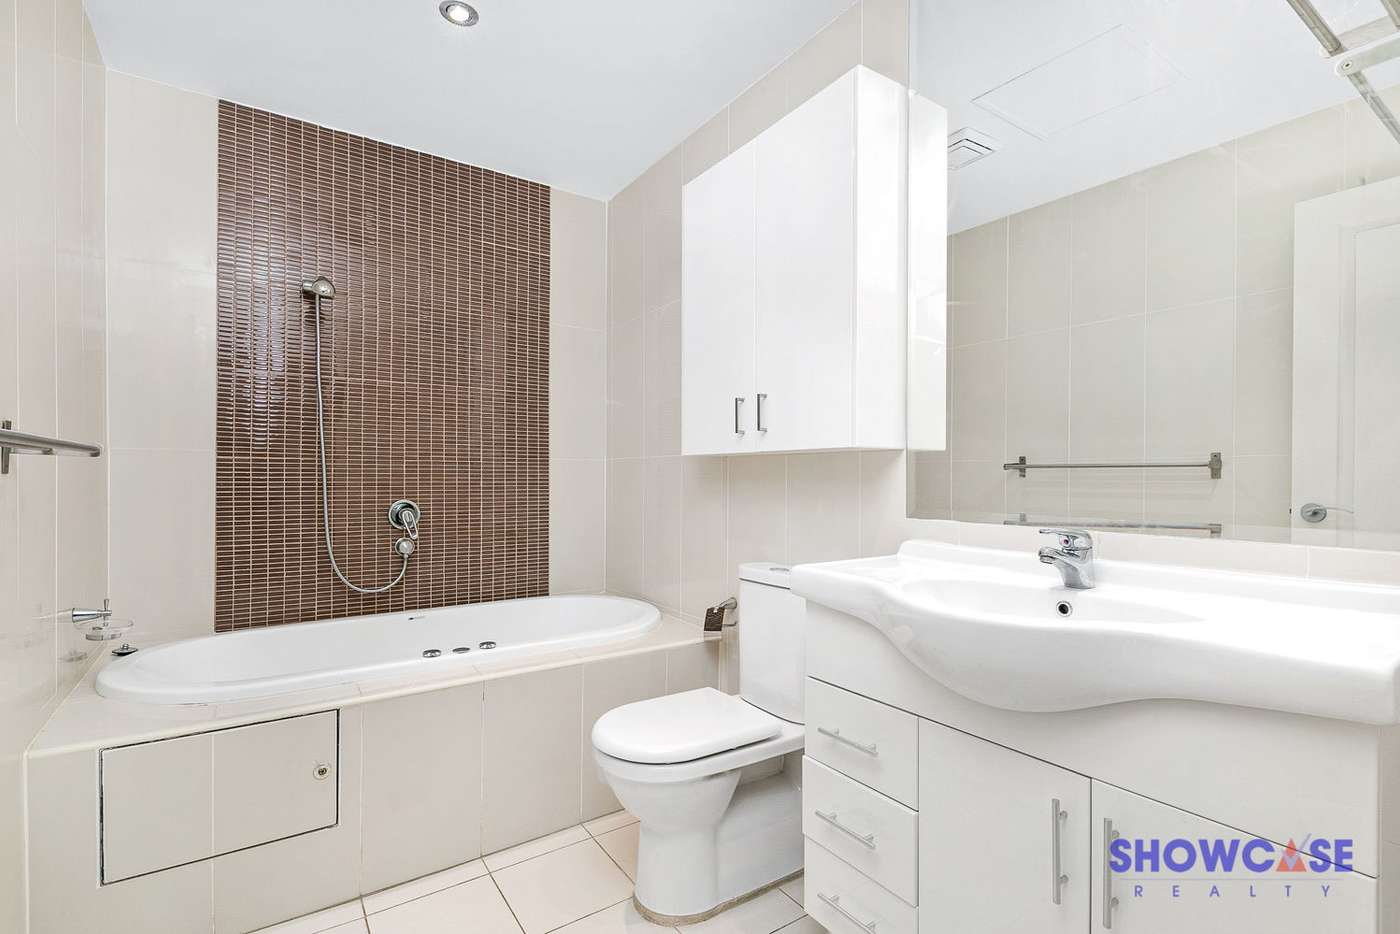 Sixth view of Homely apartment listing, 14/1-7 Young Road, Carlingford NSW 2118